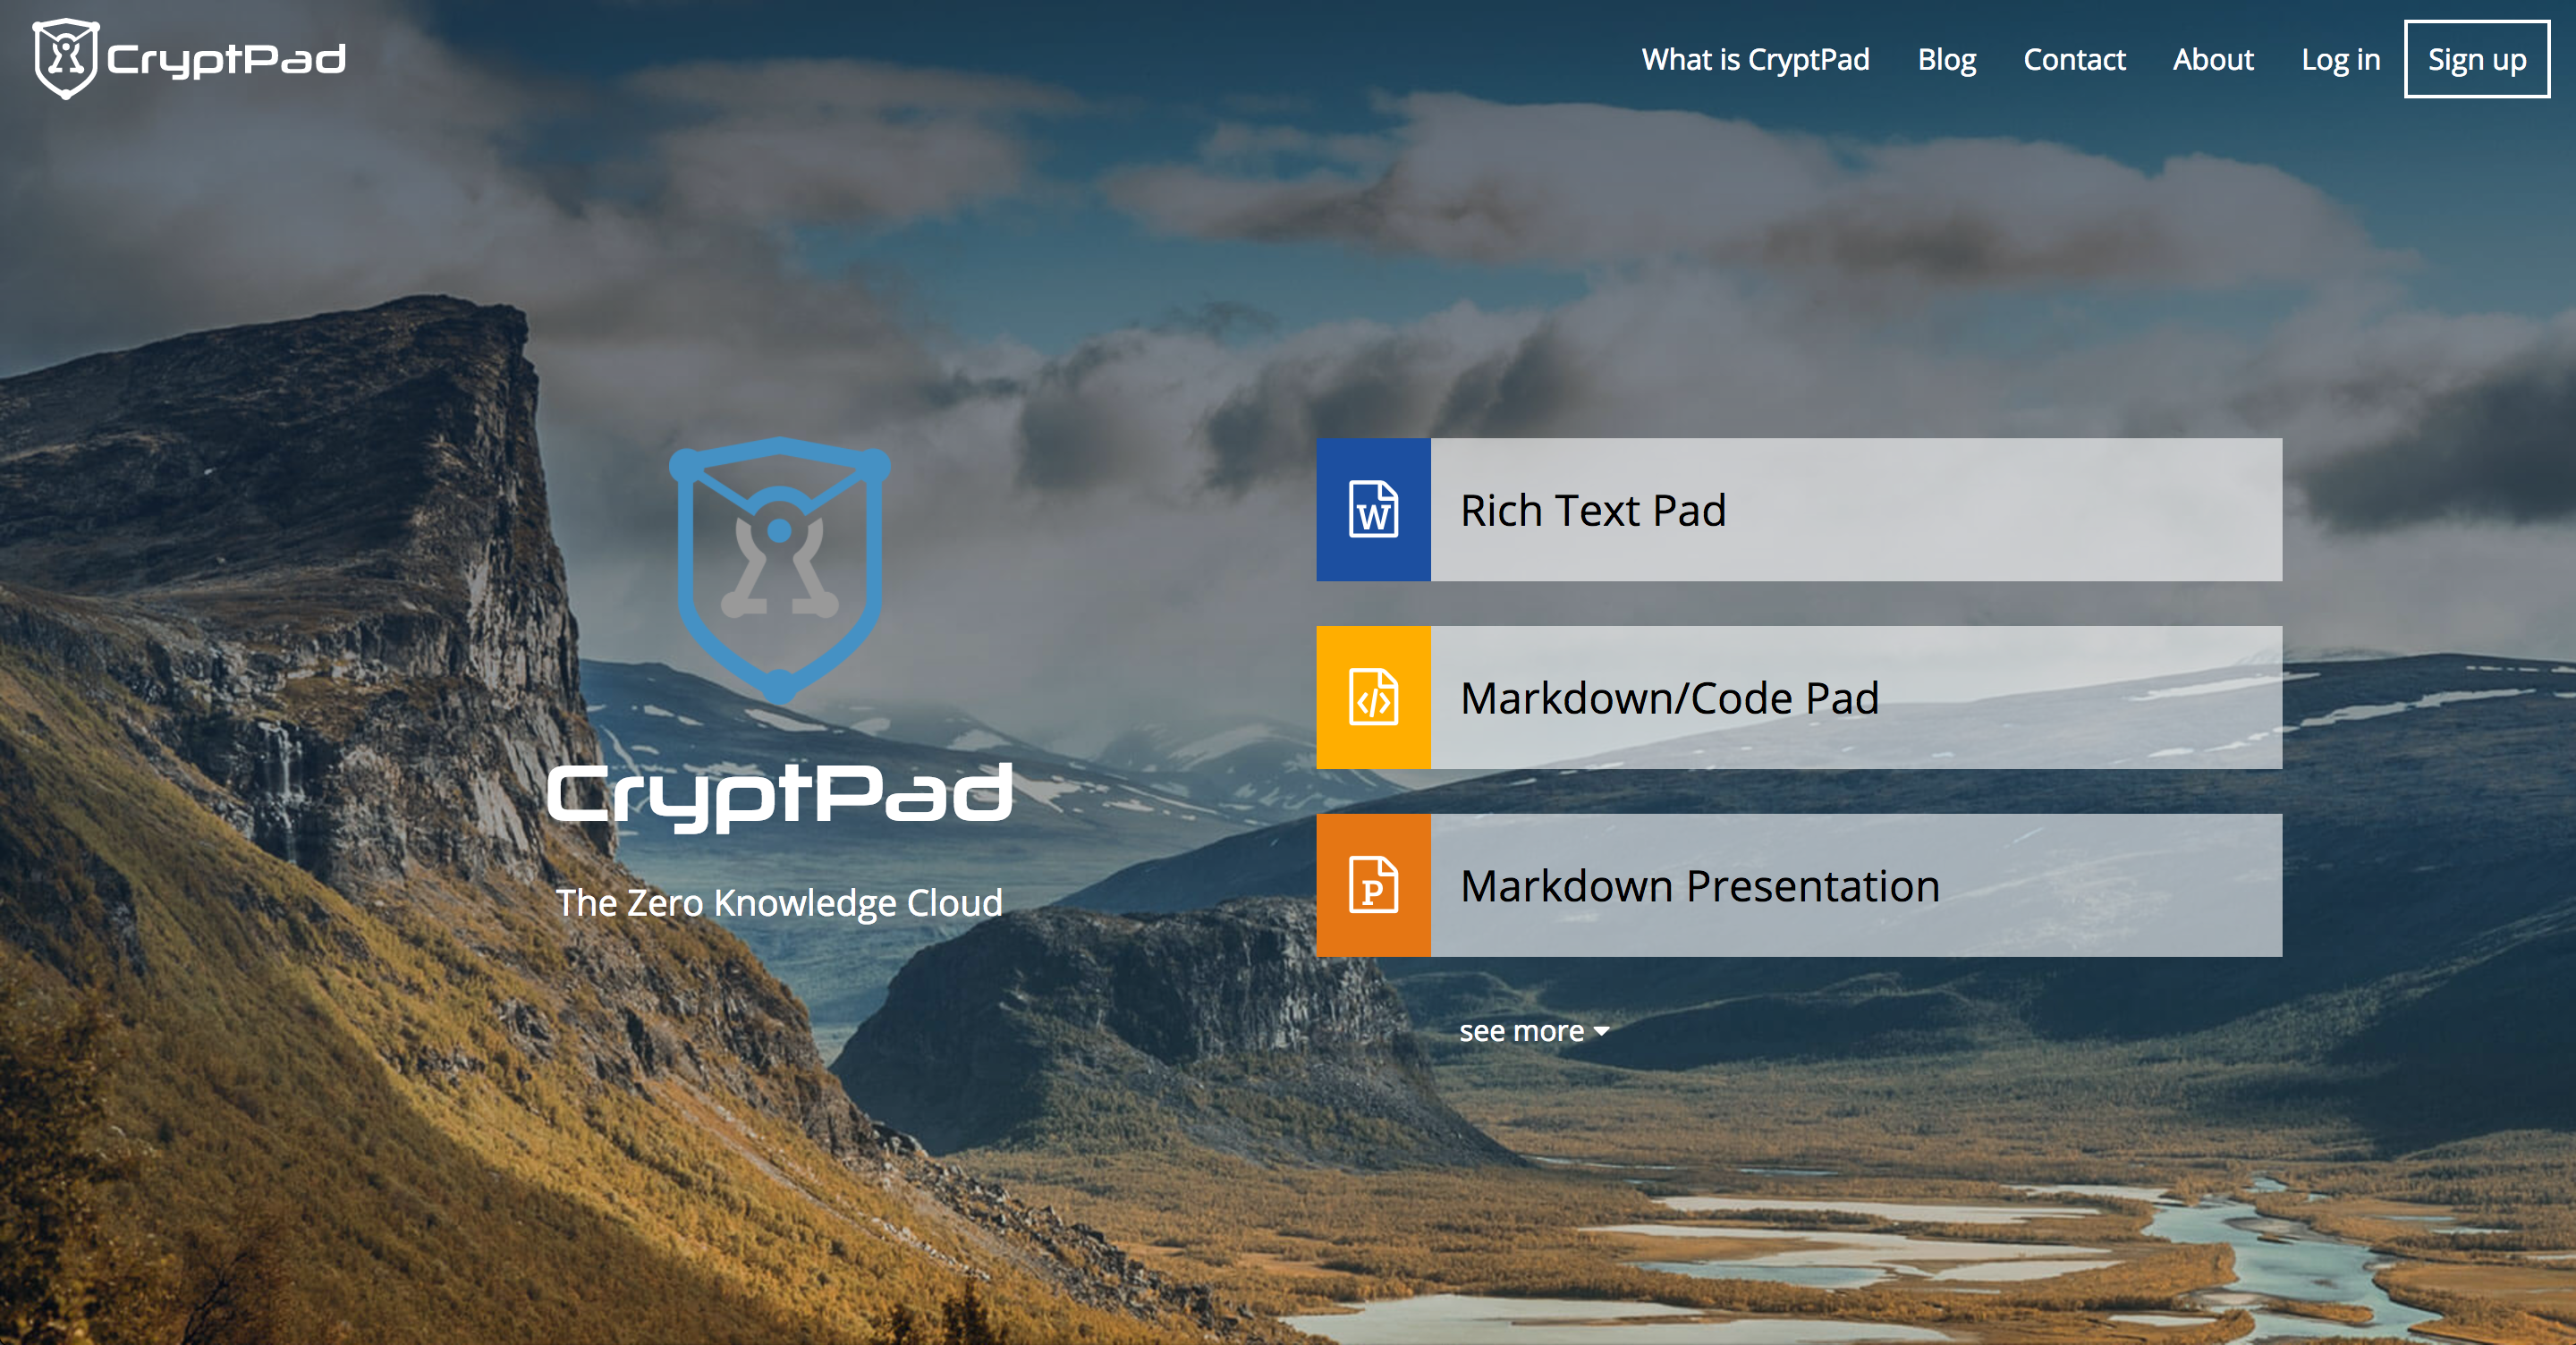 New CryptPad Main Page